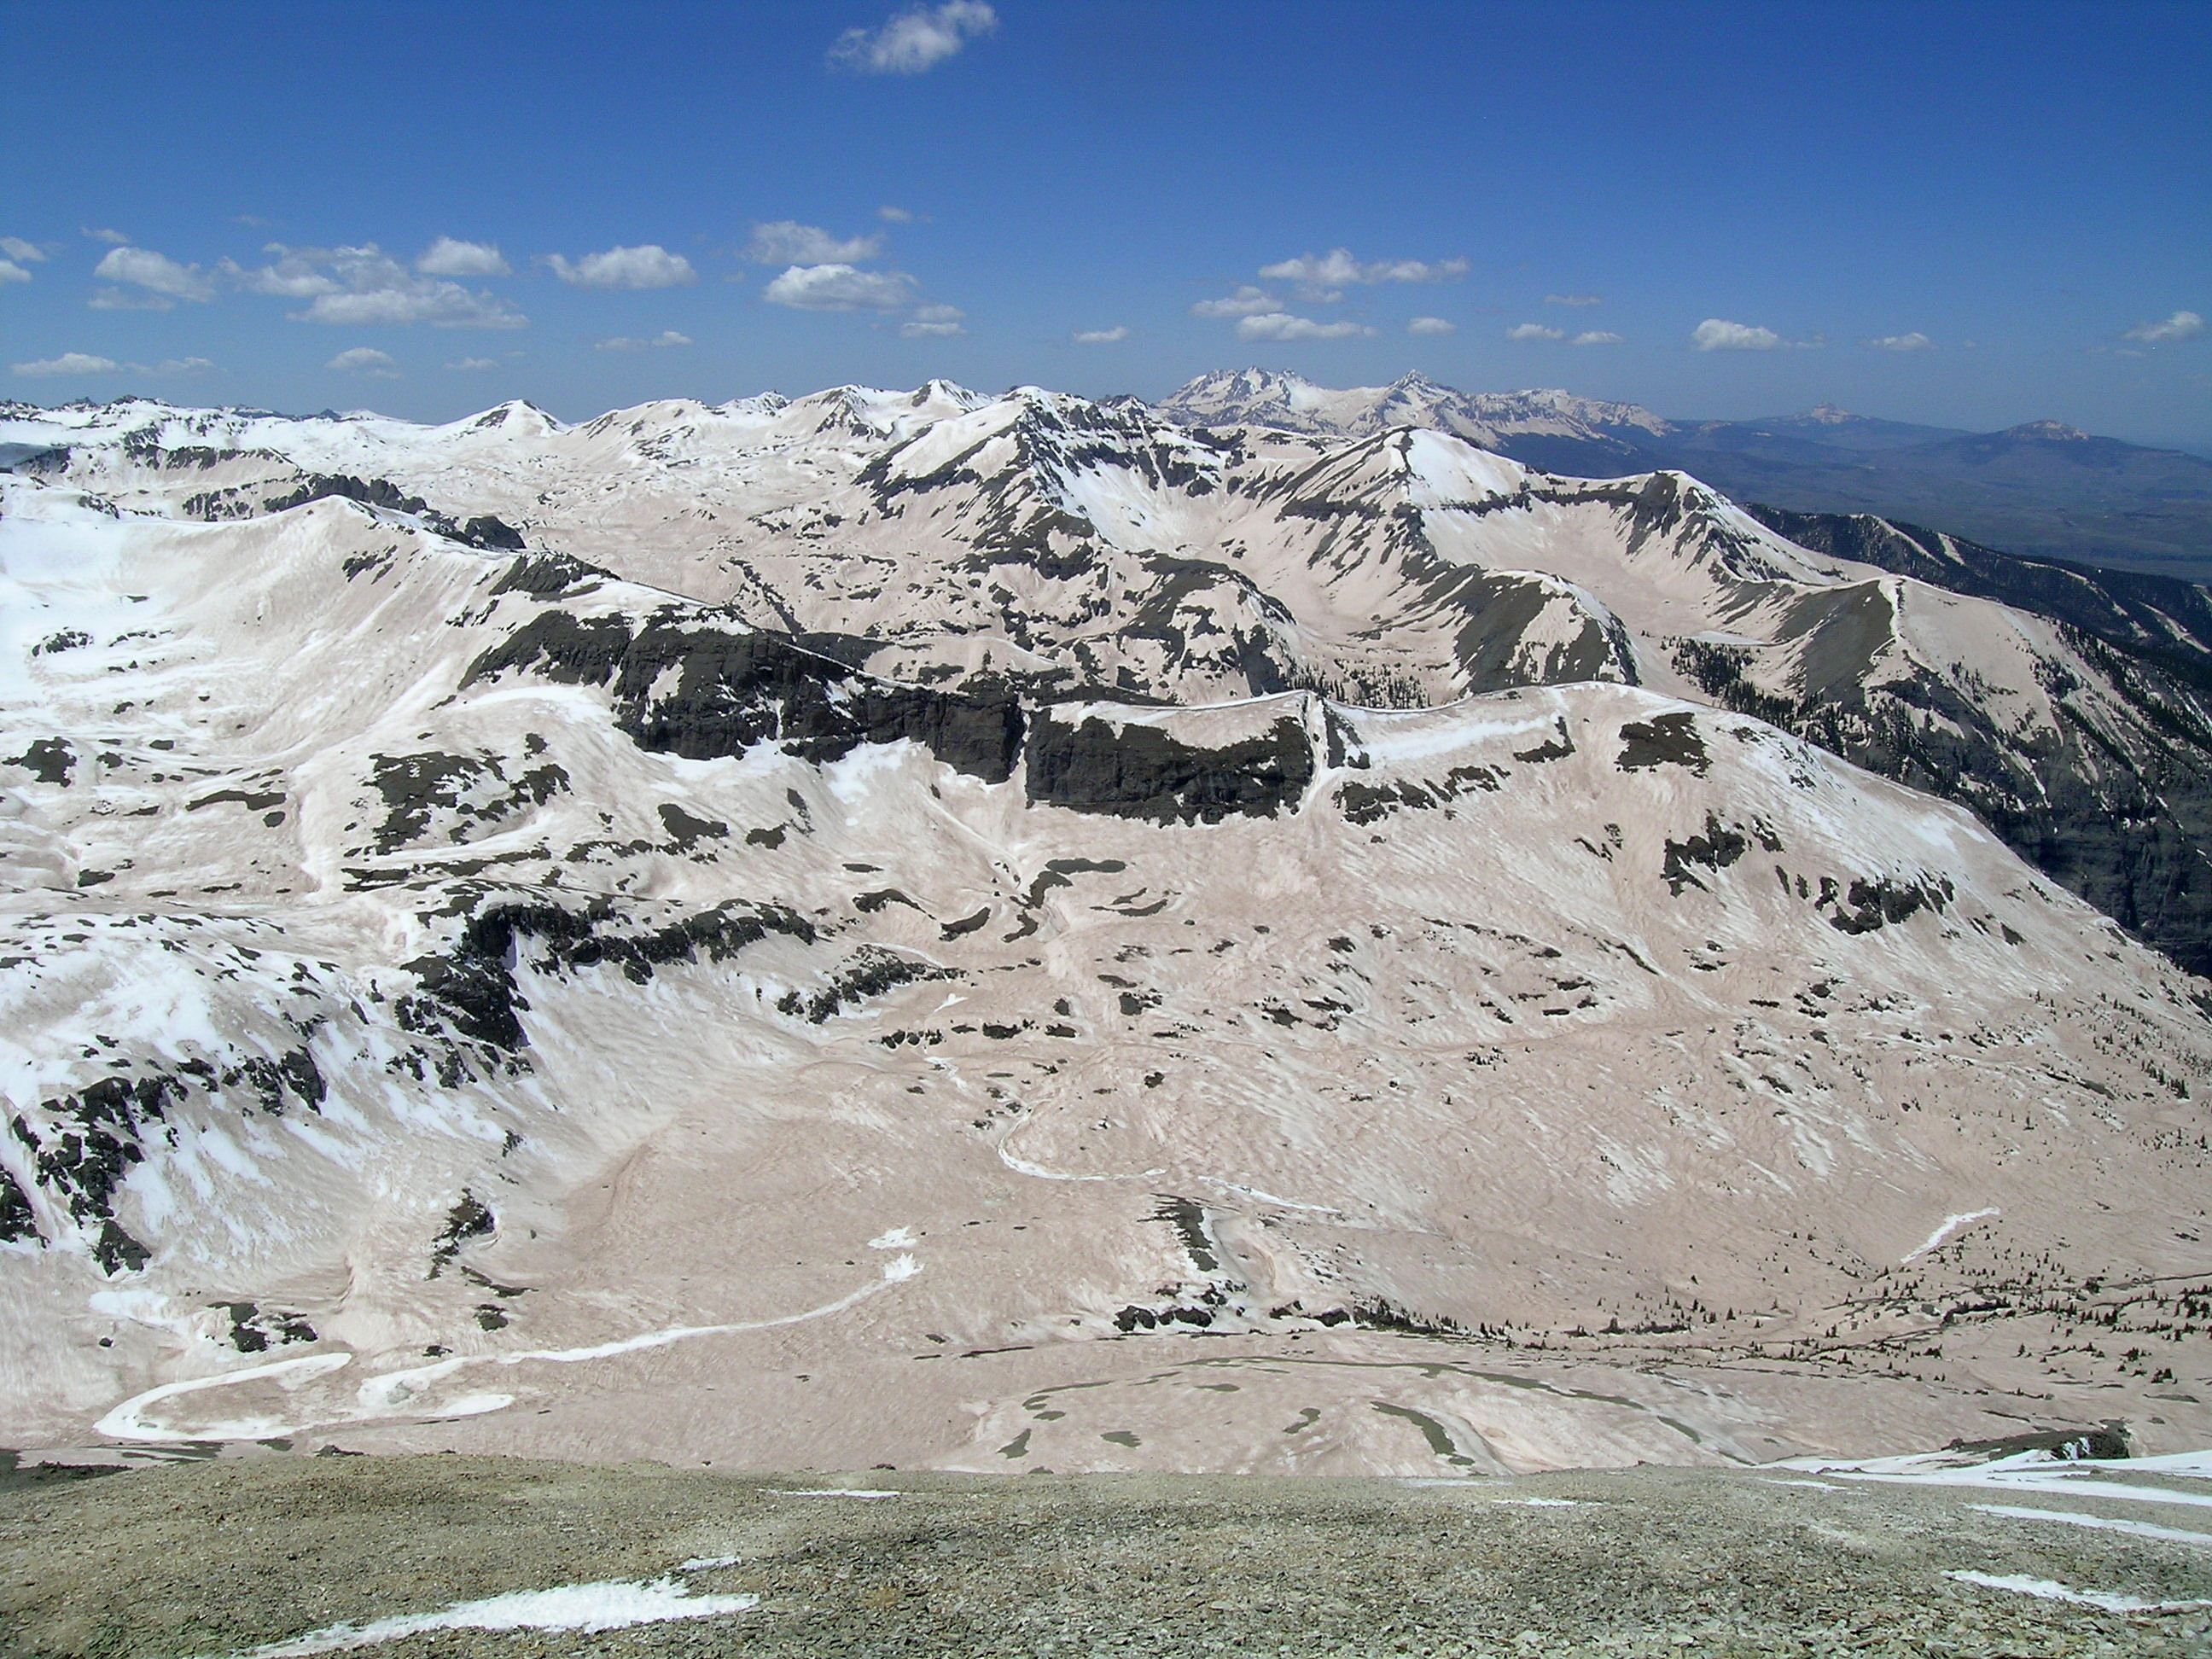 Dust on snow after a dust storm in the San Juan Mountains